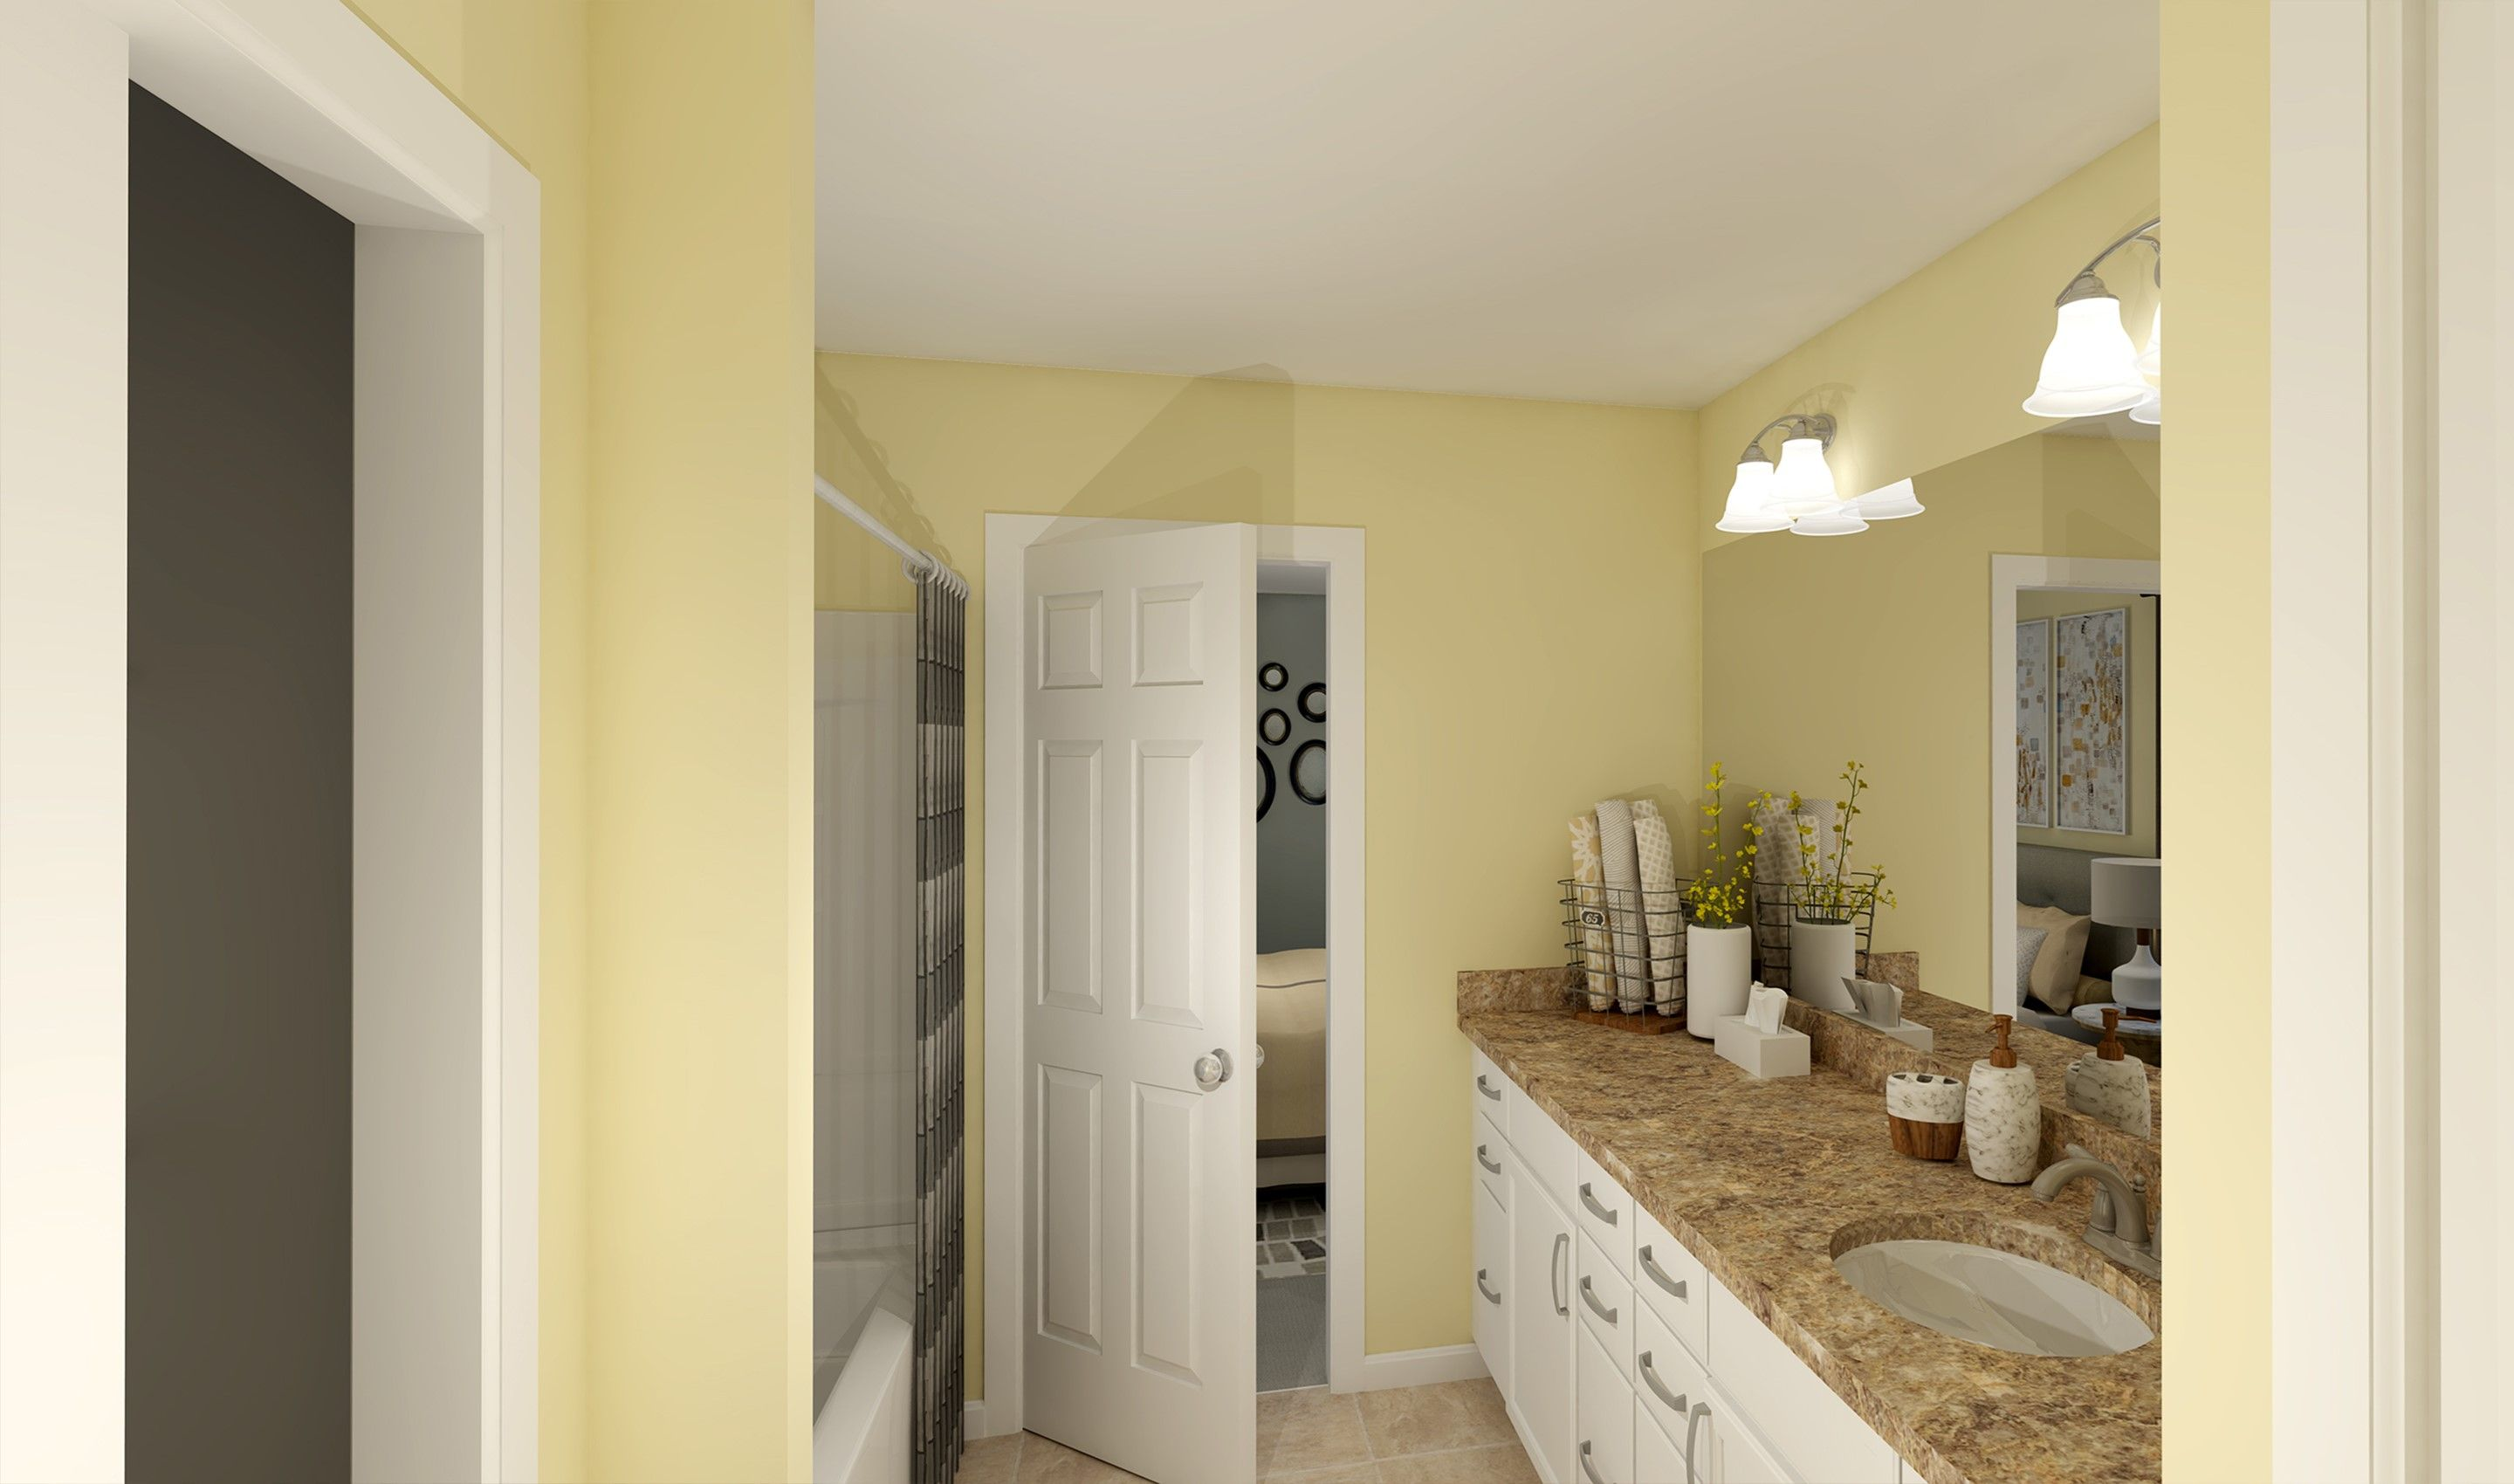 Bathroom featured in the Taft By K. Hovnanian® Homes - Build on Your Lot in Toledo, OH